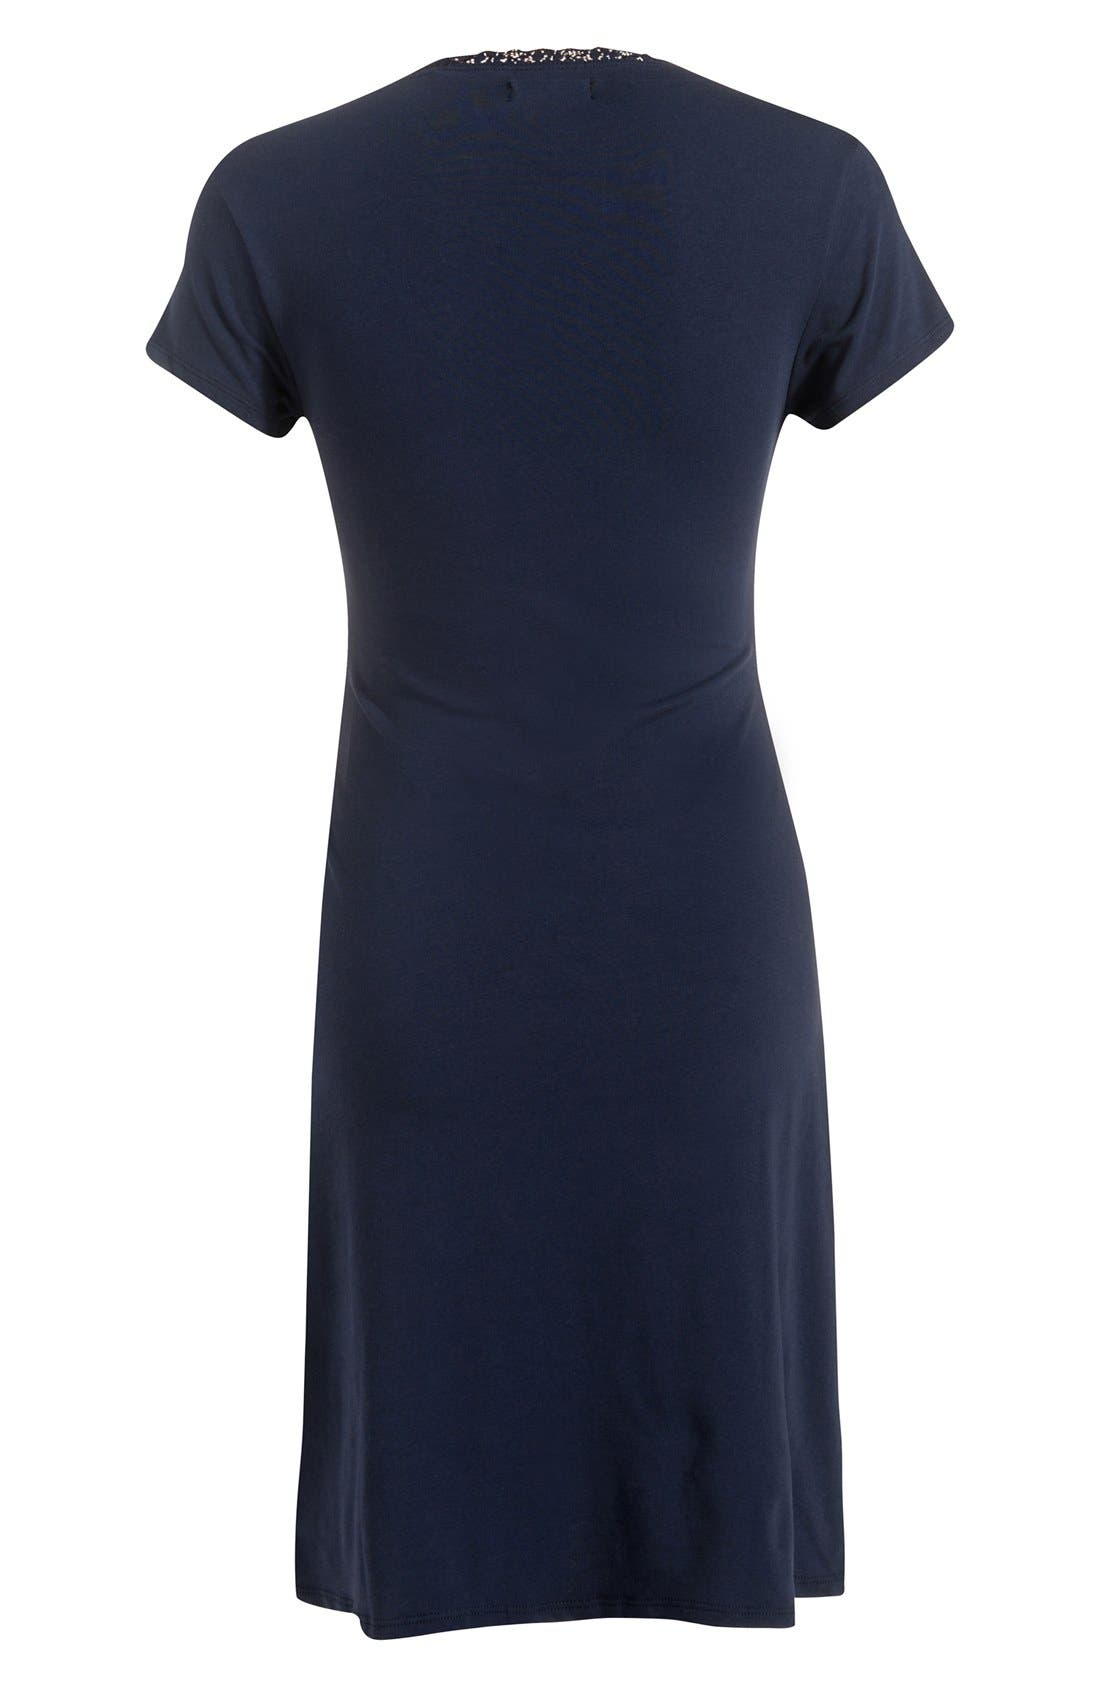 'Marni' Maternity/Nursing Jersey Dress,                             Alternate thumbnail 2, color,                             Navy